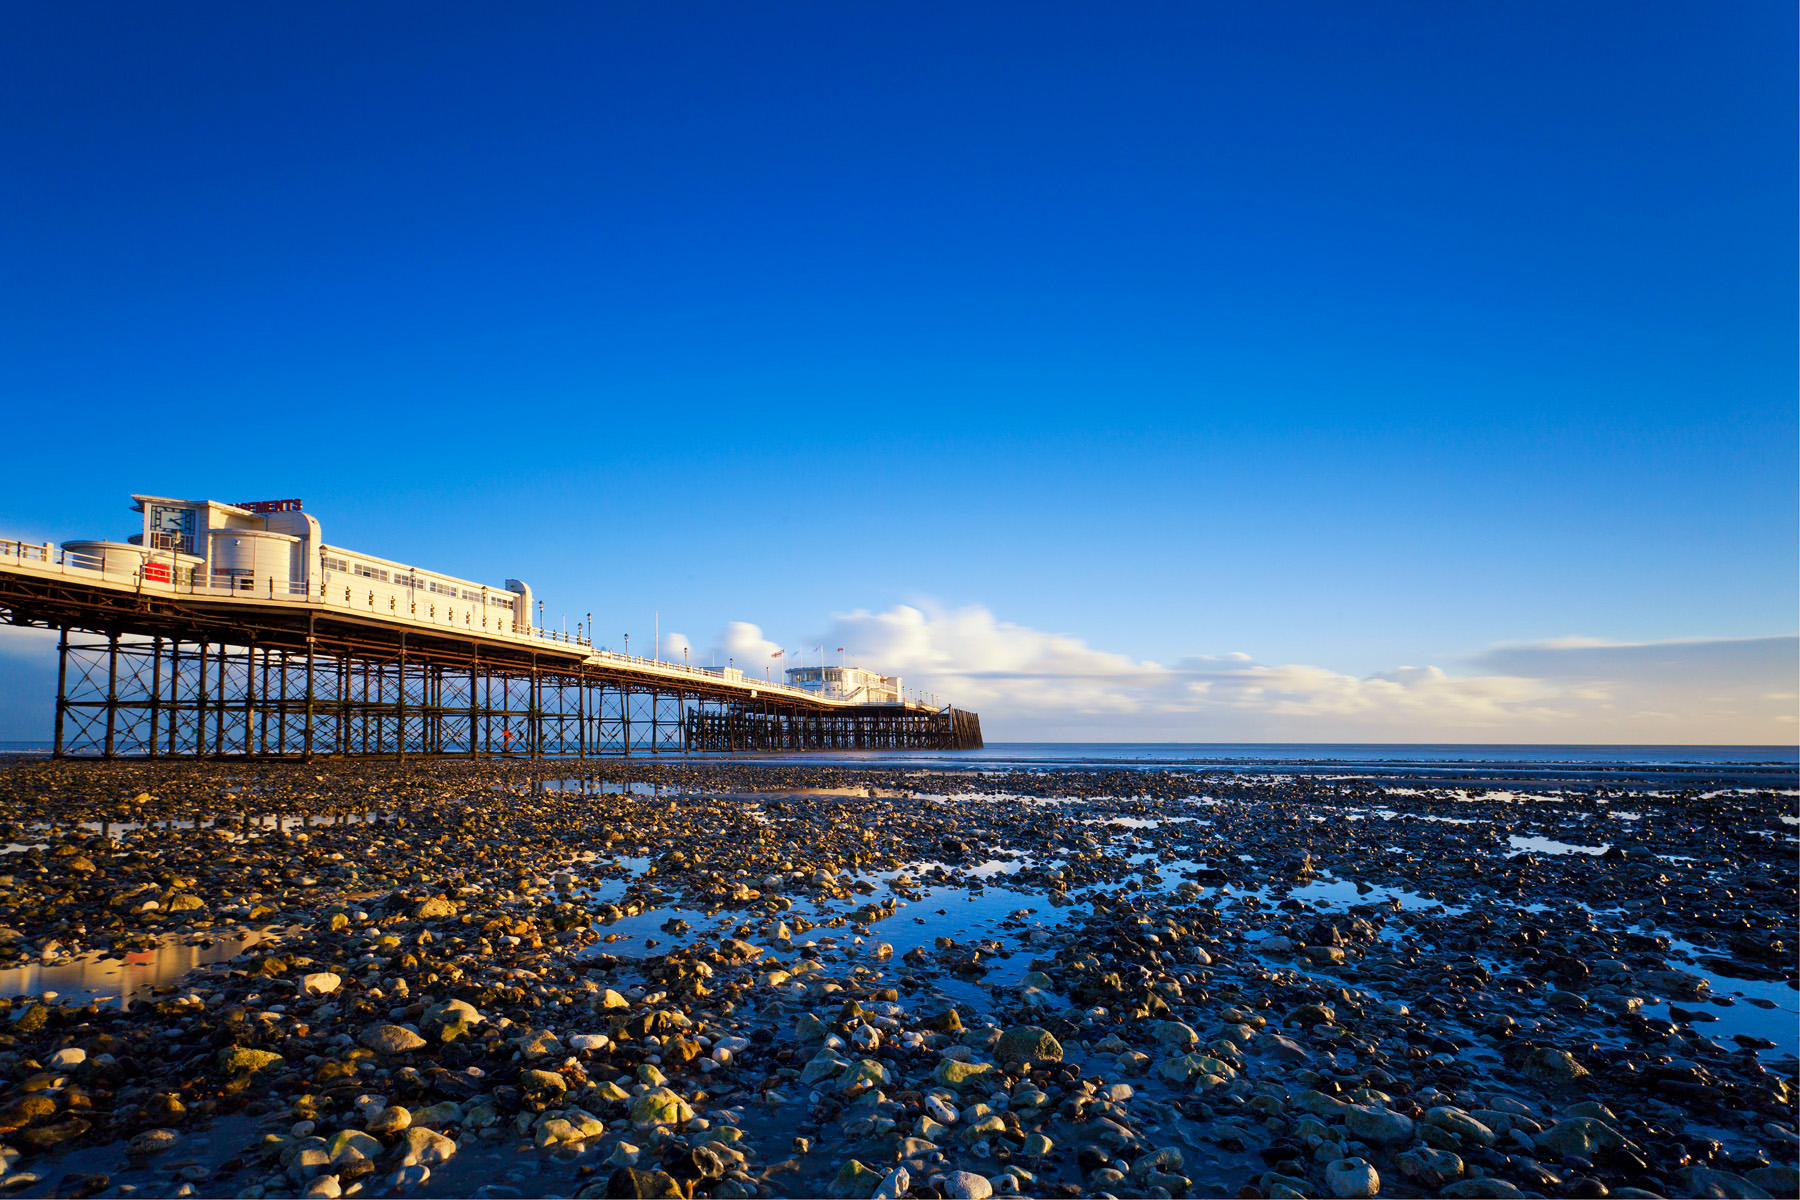 Worthing Pier, Worthing, West Sussex